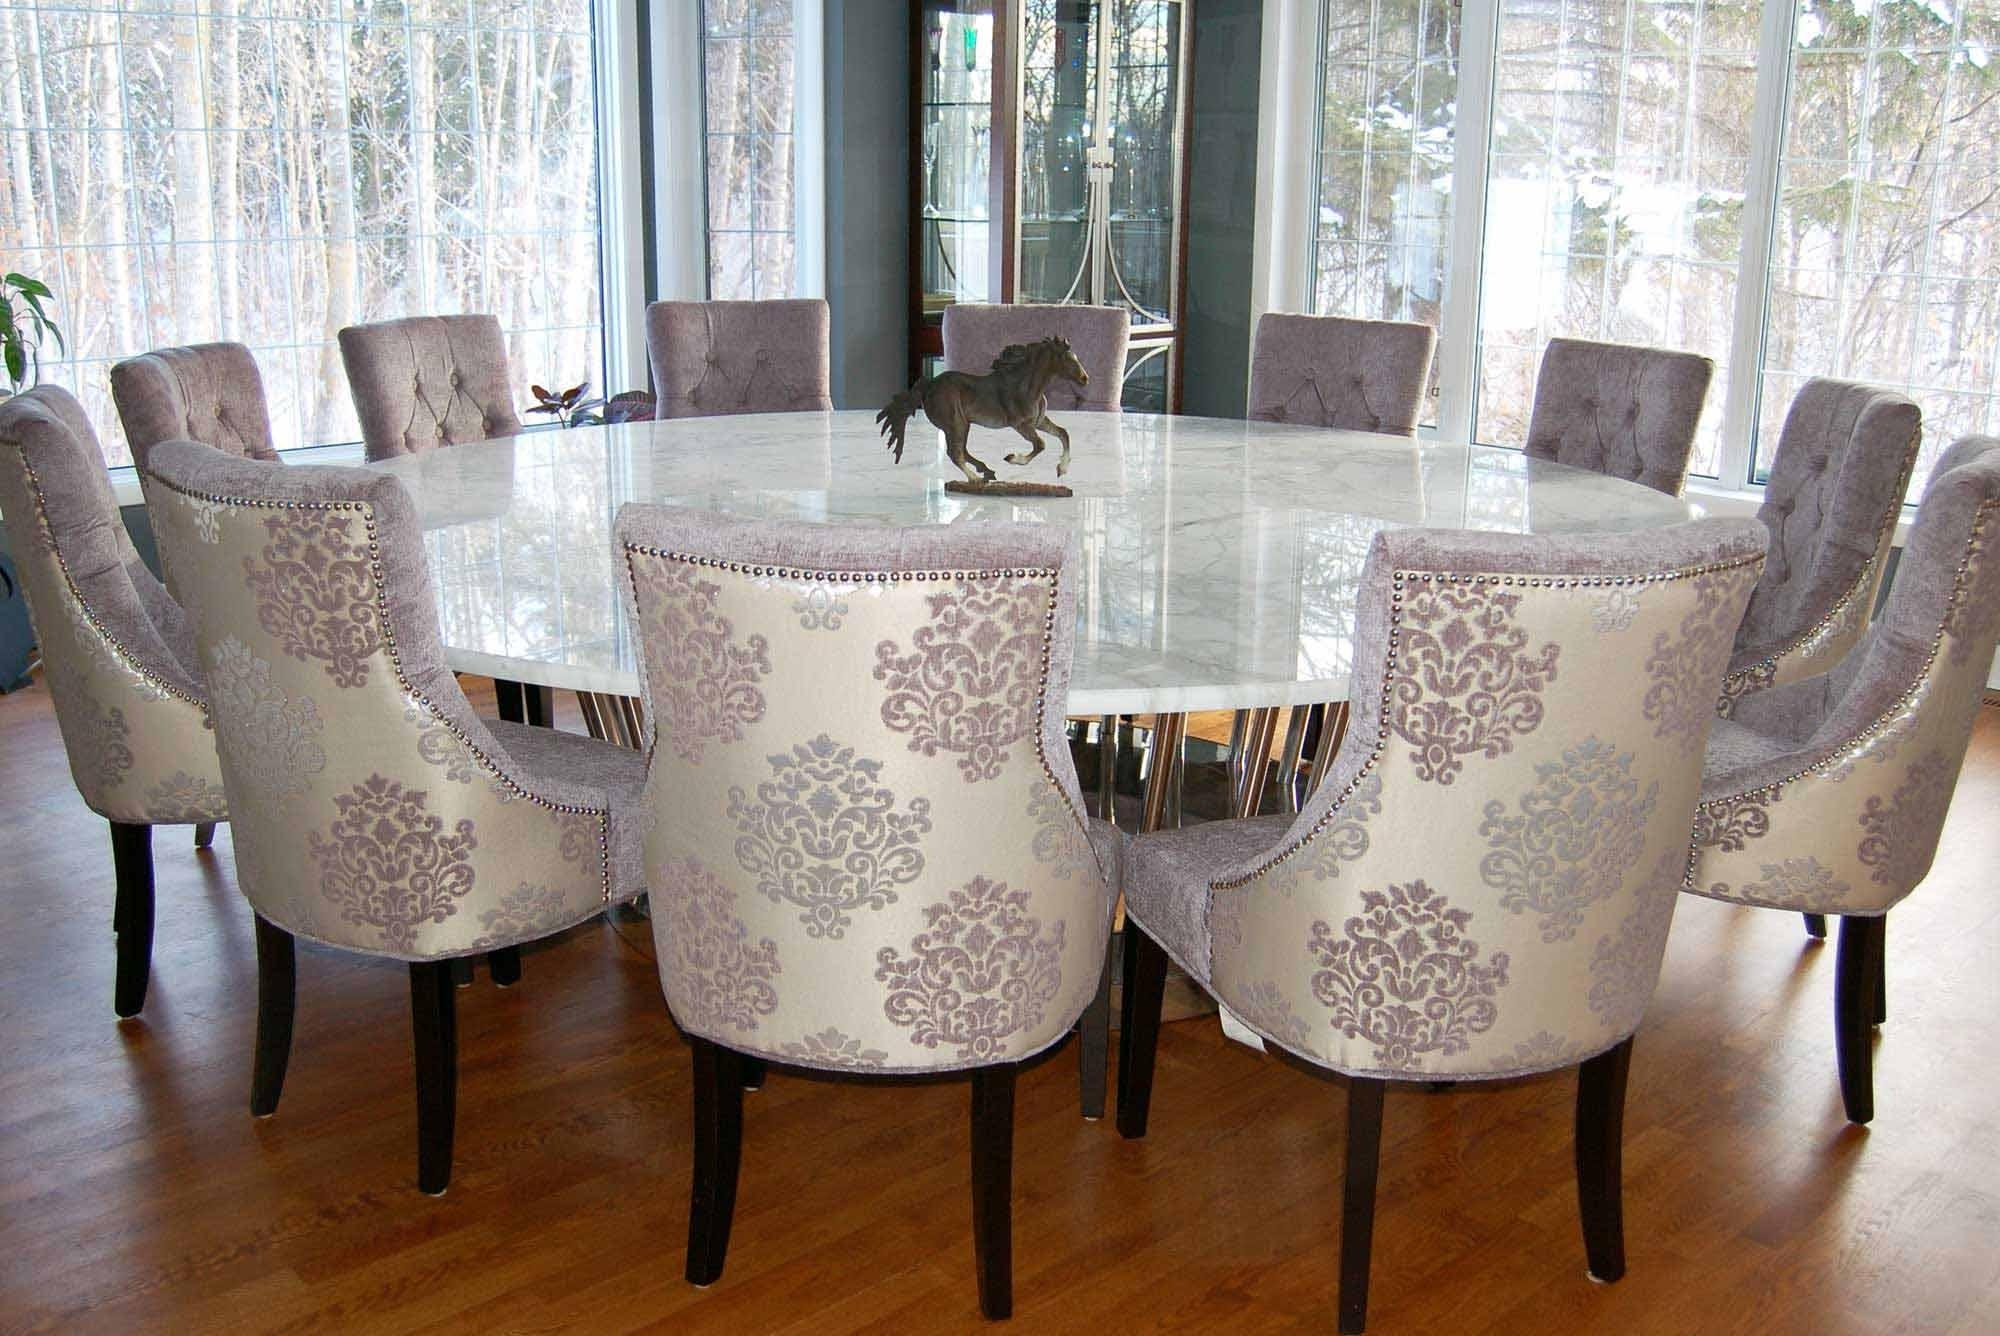 12 Seater Round Dining Table And Chairs – Round Table Ideas Pertaining To Most Up To Date Round 6 Person Dining Tables (View 12 of 25)